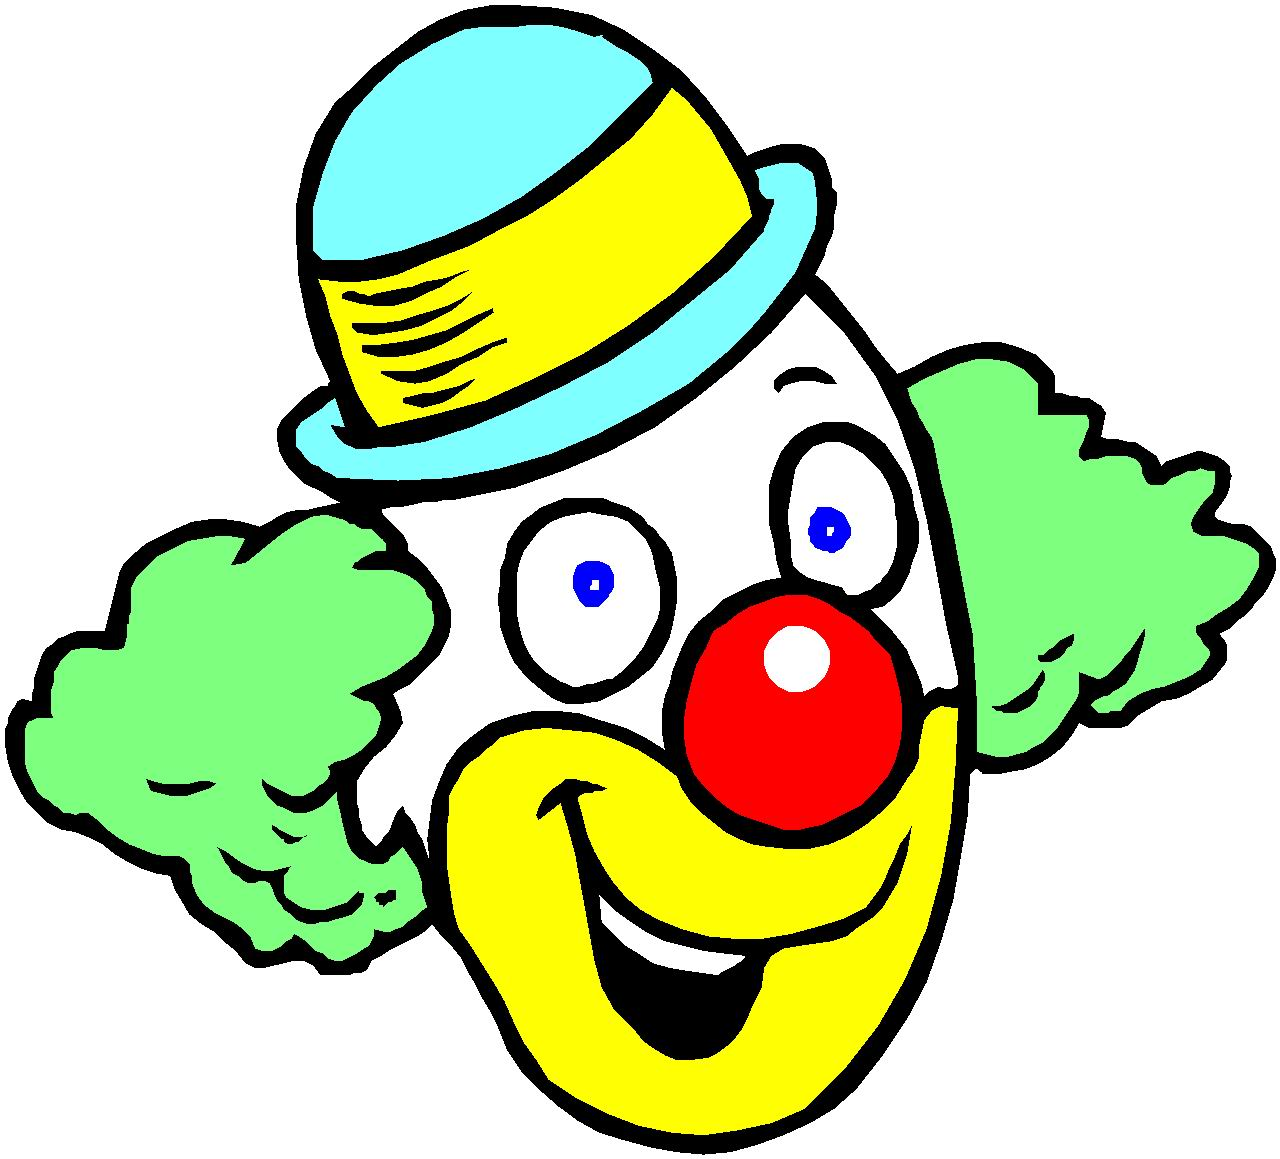 clowns clip art picgifs com rh picgifs com clip art crowns for kings clip art clown fish